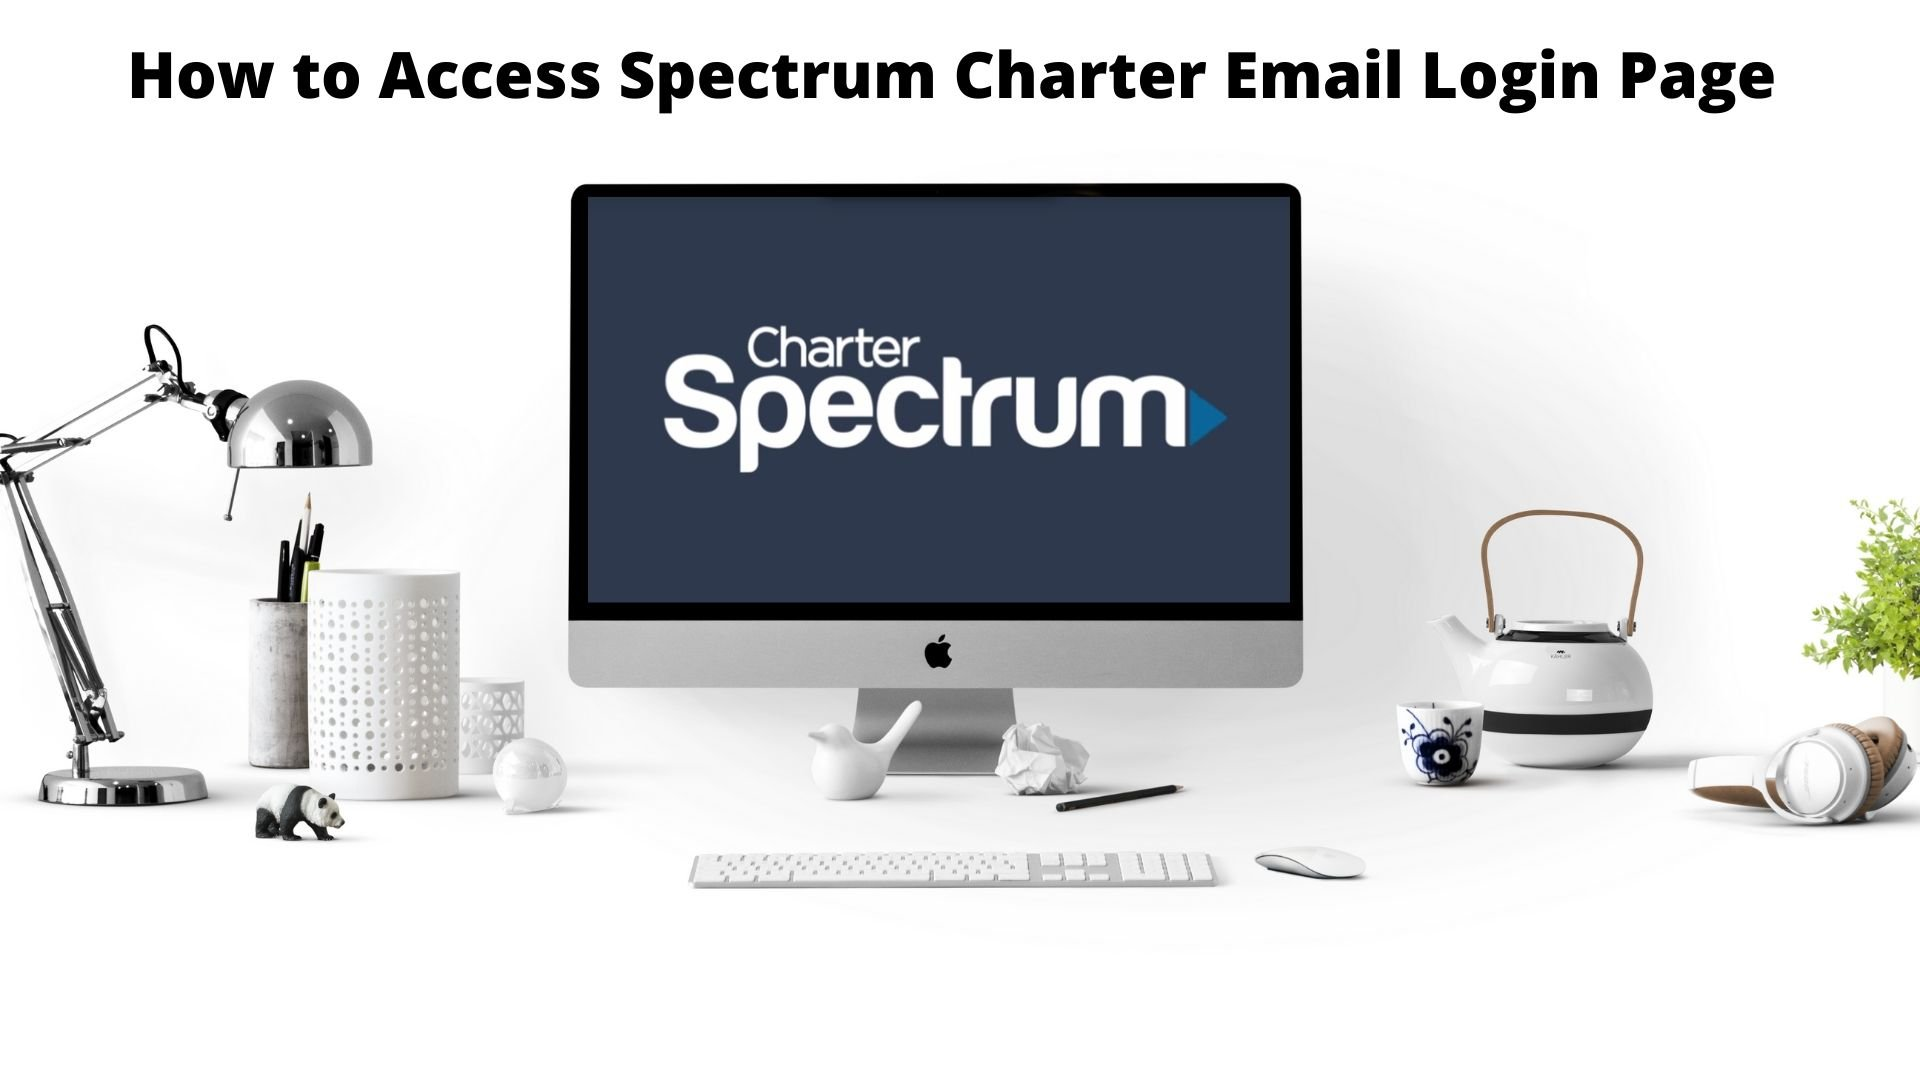 How to Access Spectrum Charter Email Login Page